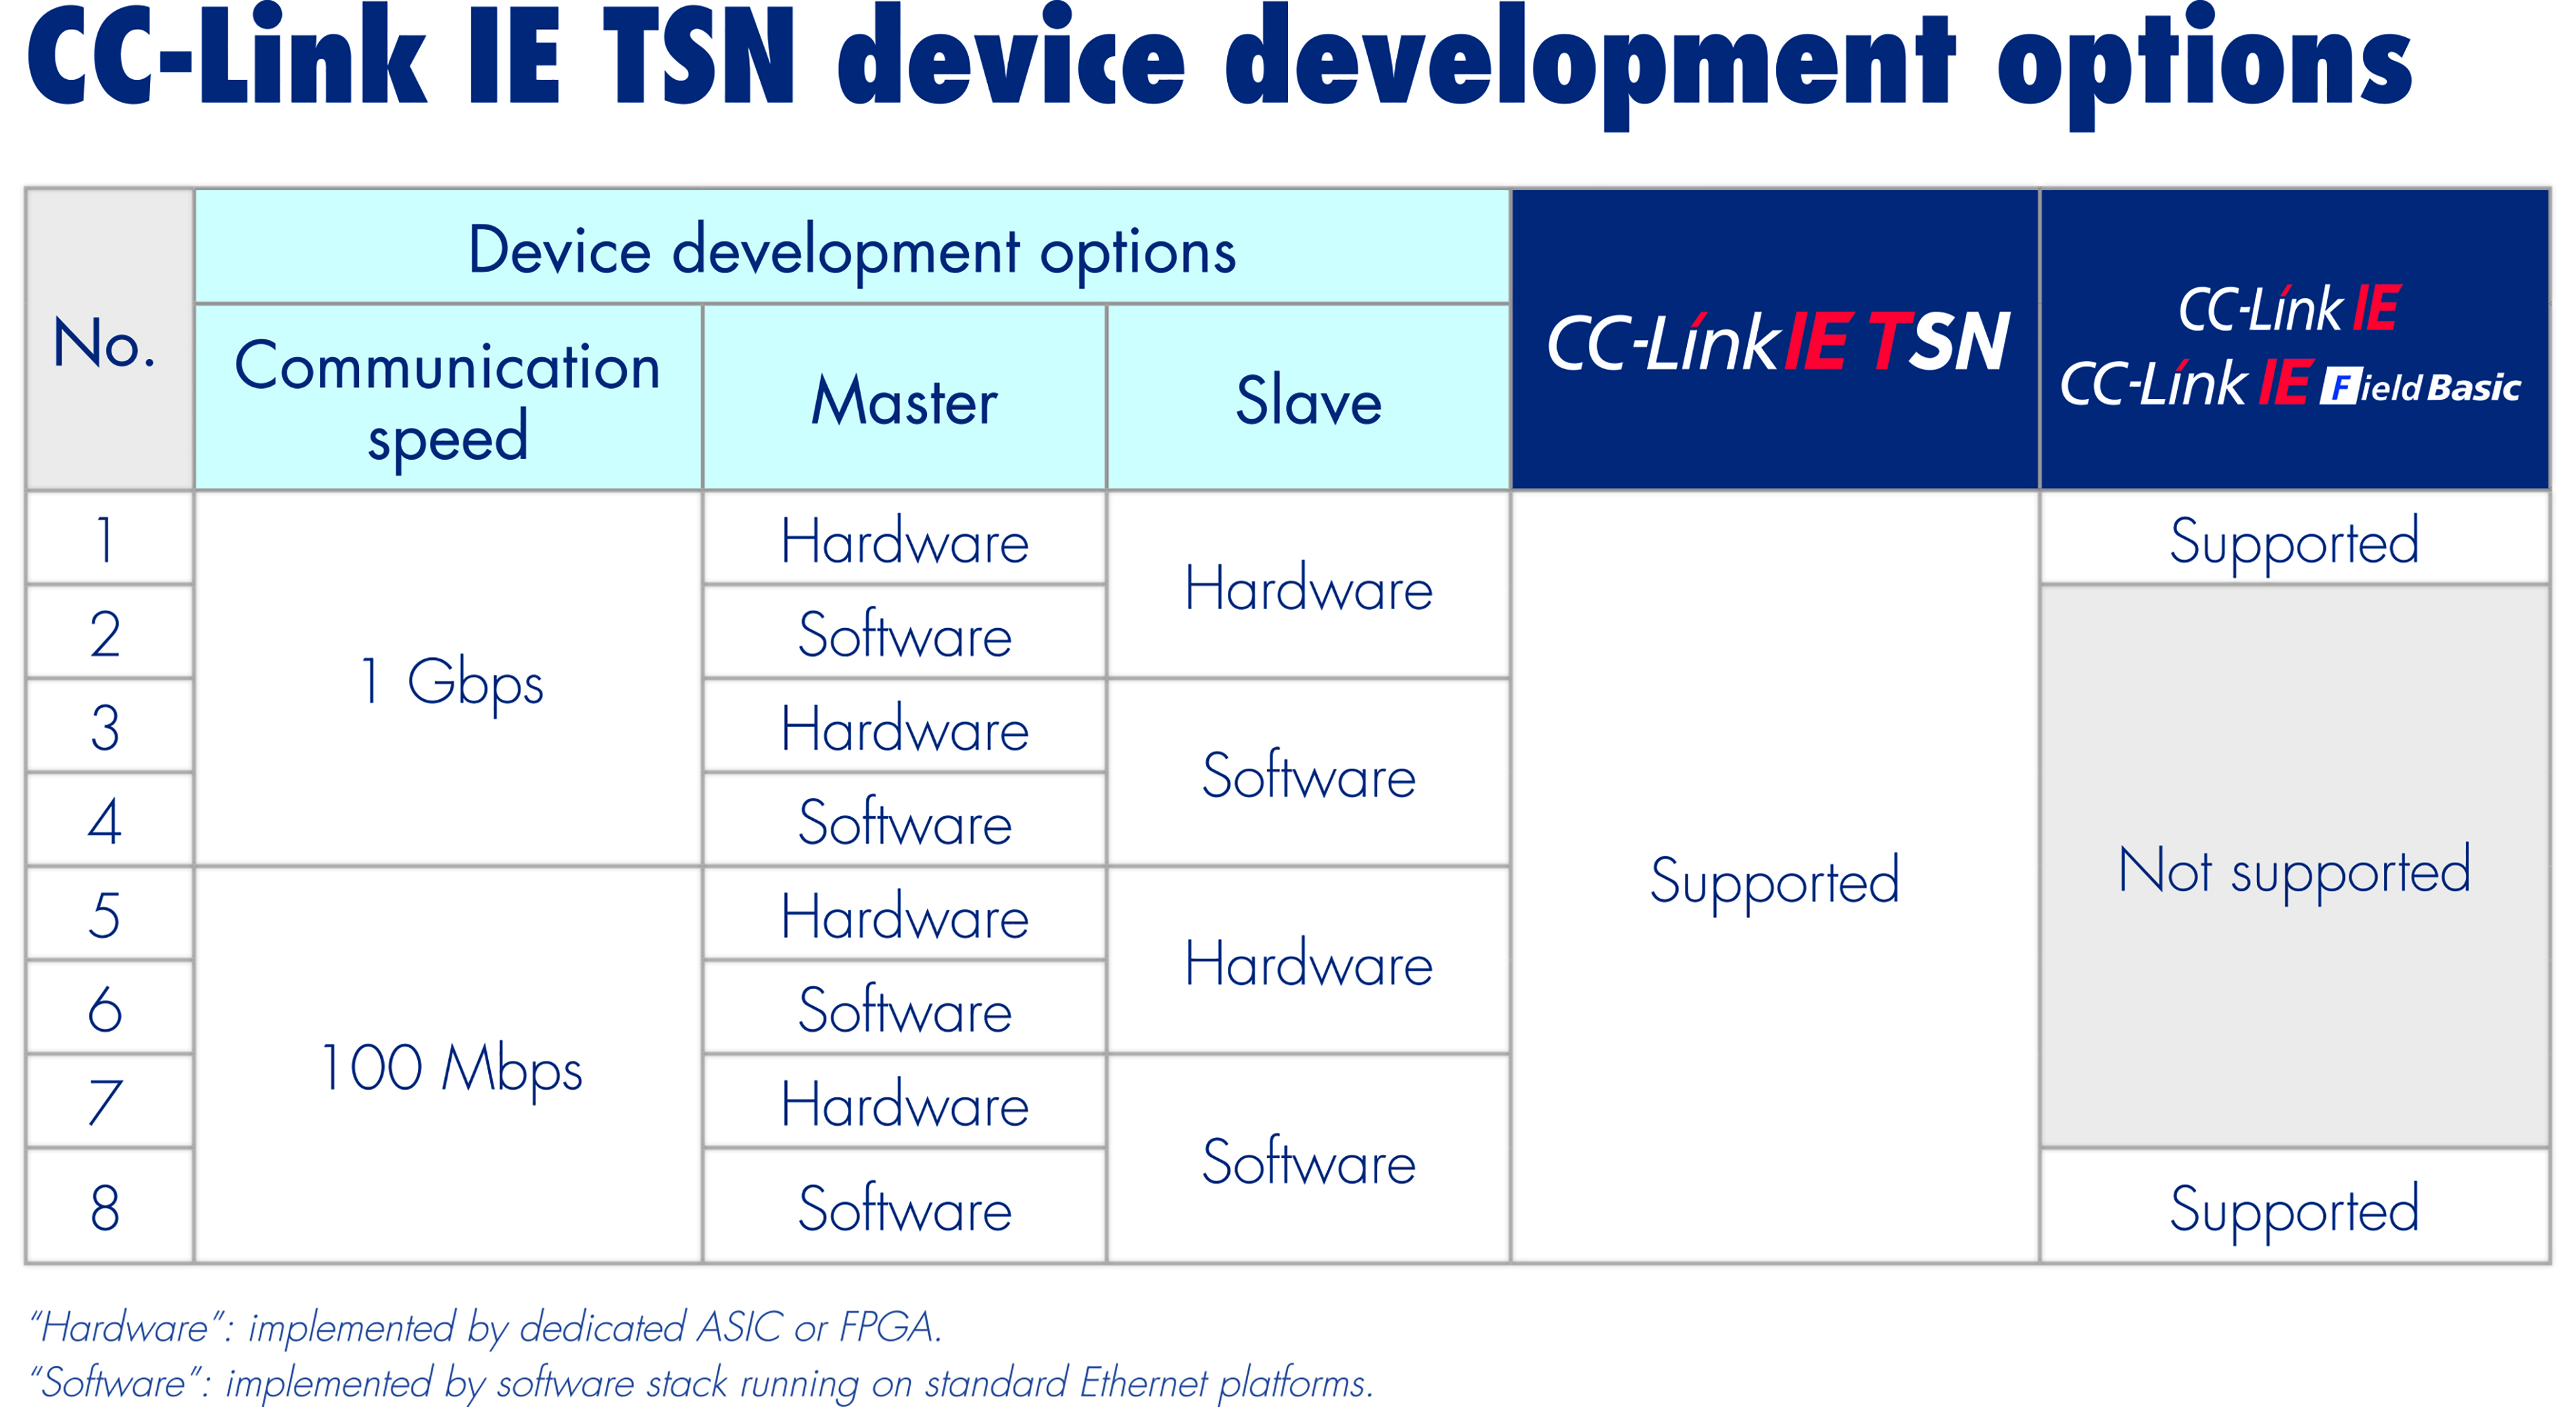 The CLPA outlines the open development ecosystem for CC-Link IE TSN